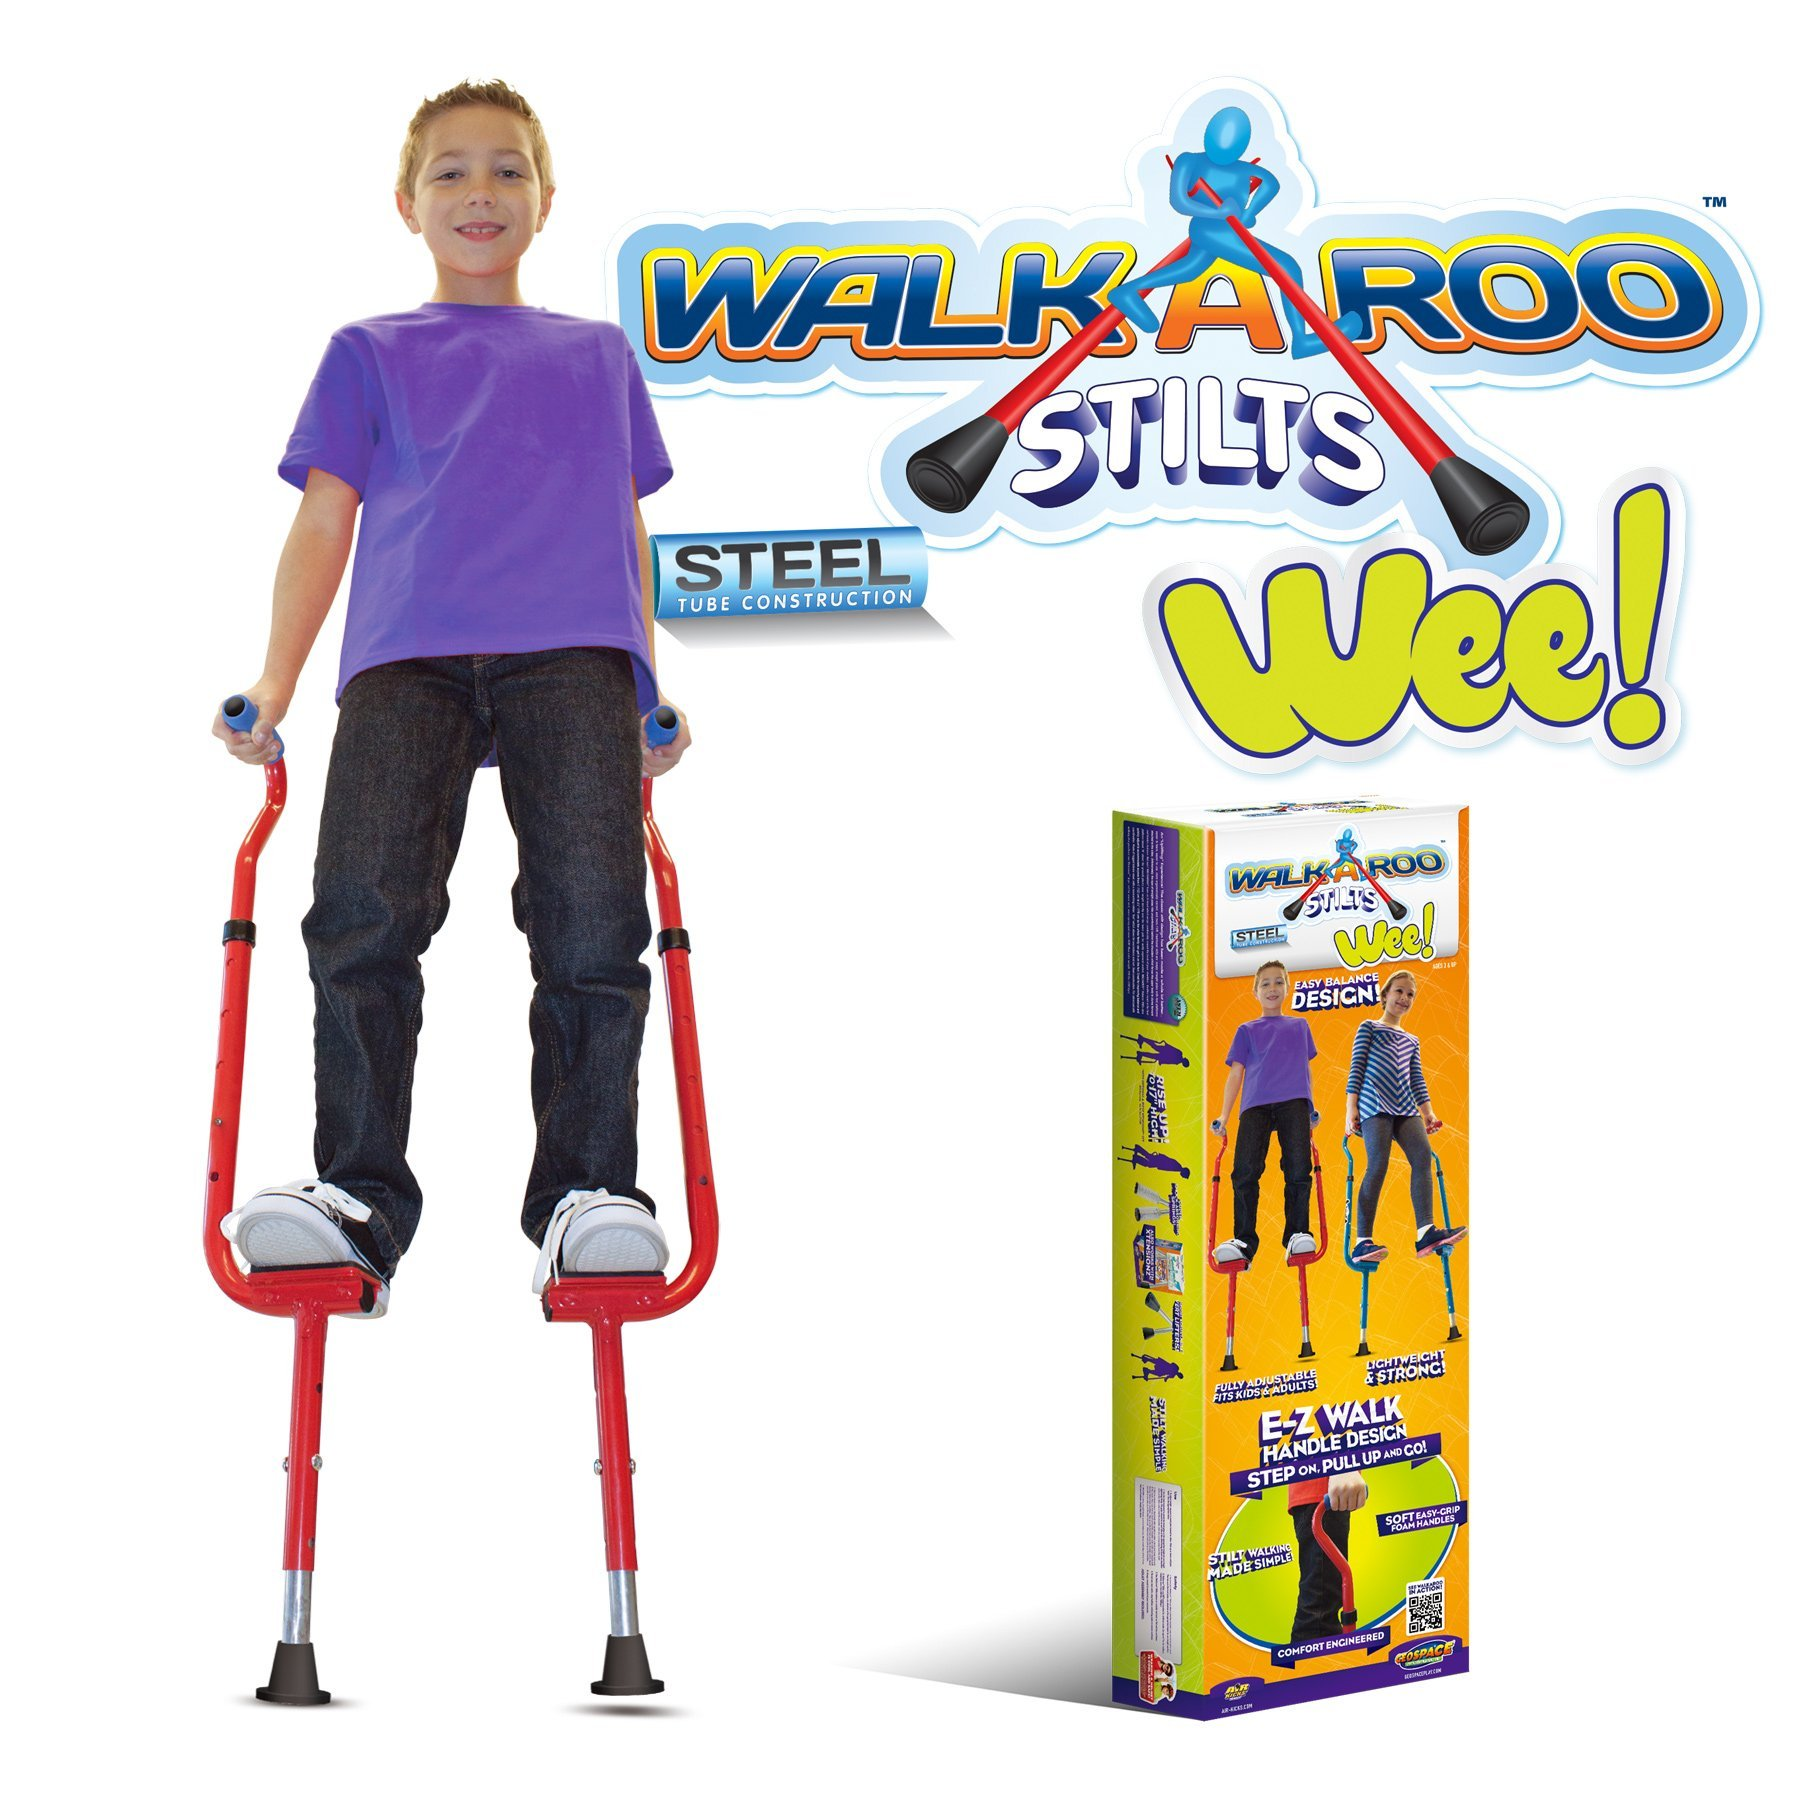 Geospace Original Walkaroo 'Wee' Balance Stilts with Adjustable Height for Little Kids & Beginners (Ages 4+) Active Play, in Assorted Colors (Red or Blue) by Geospace